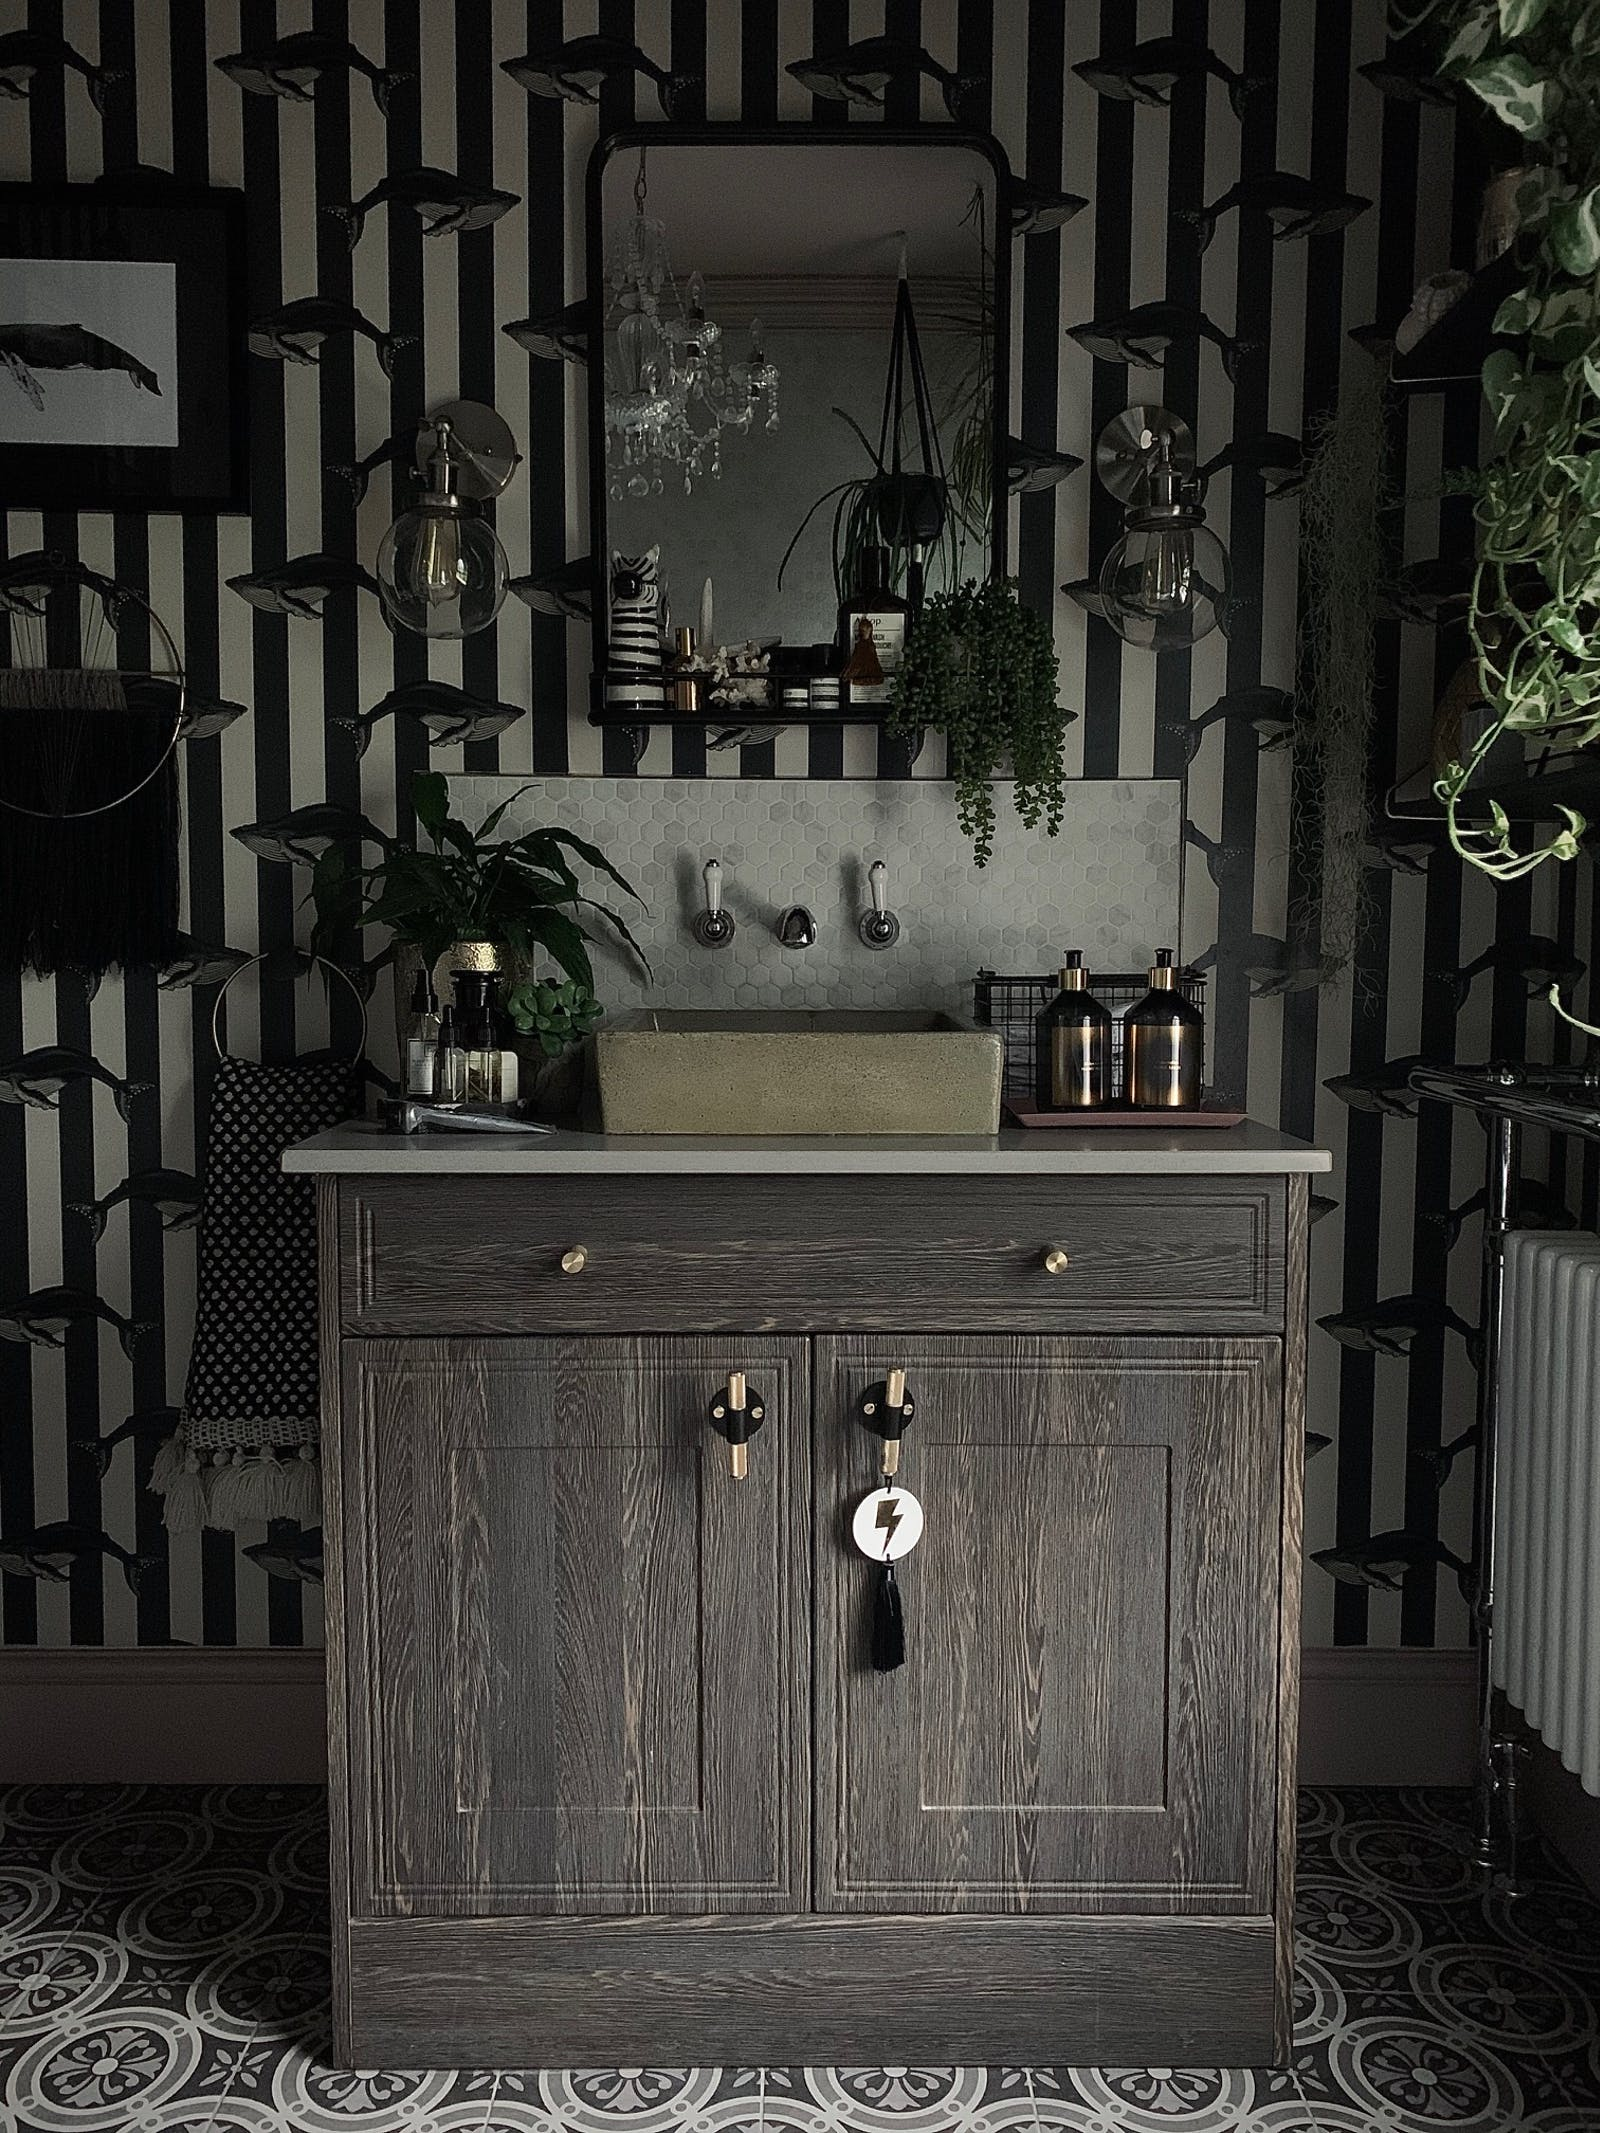 Bathroom in dark colours with lightbulbs and greenery